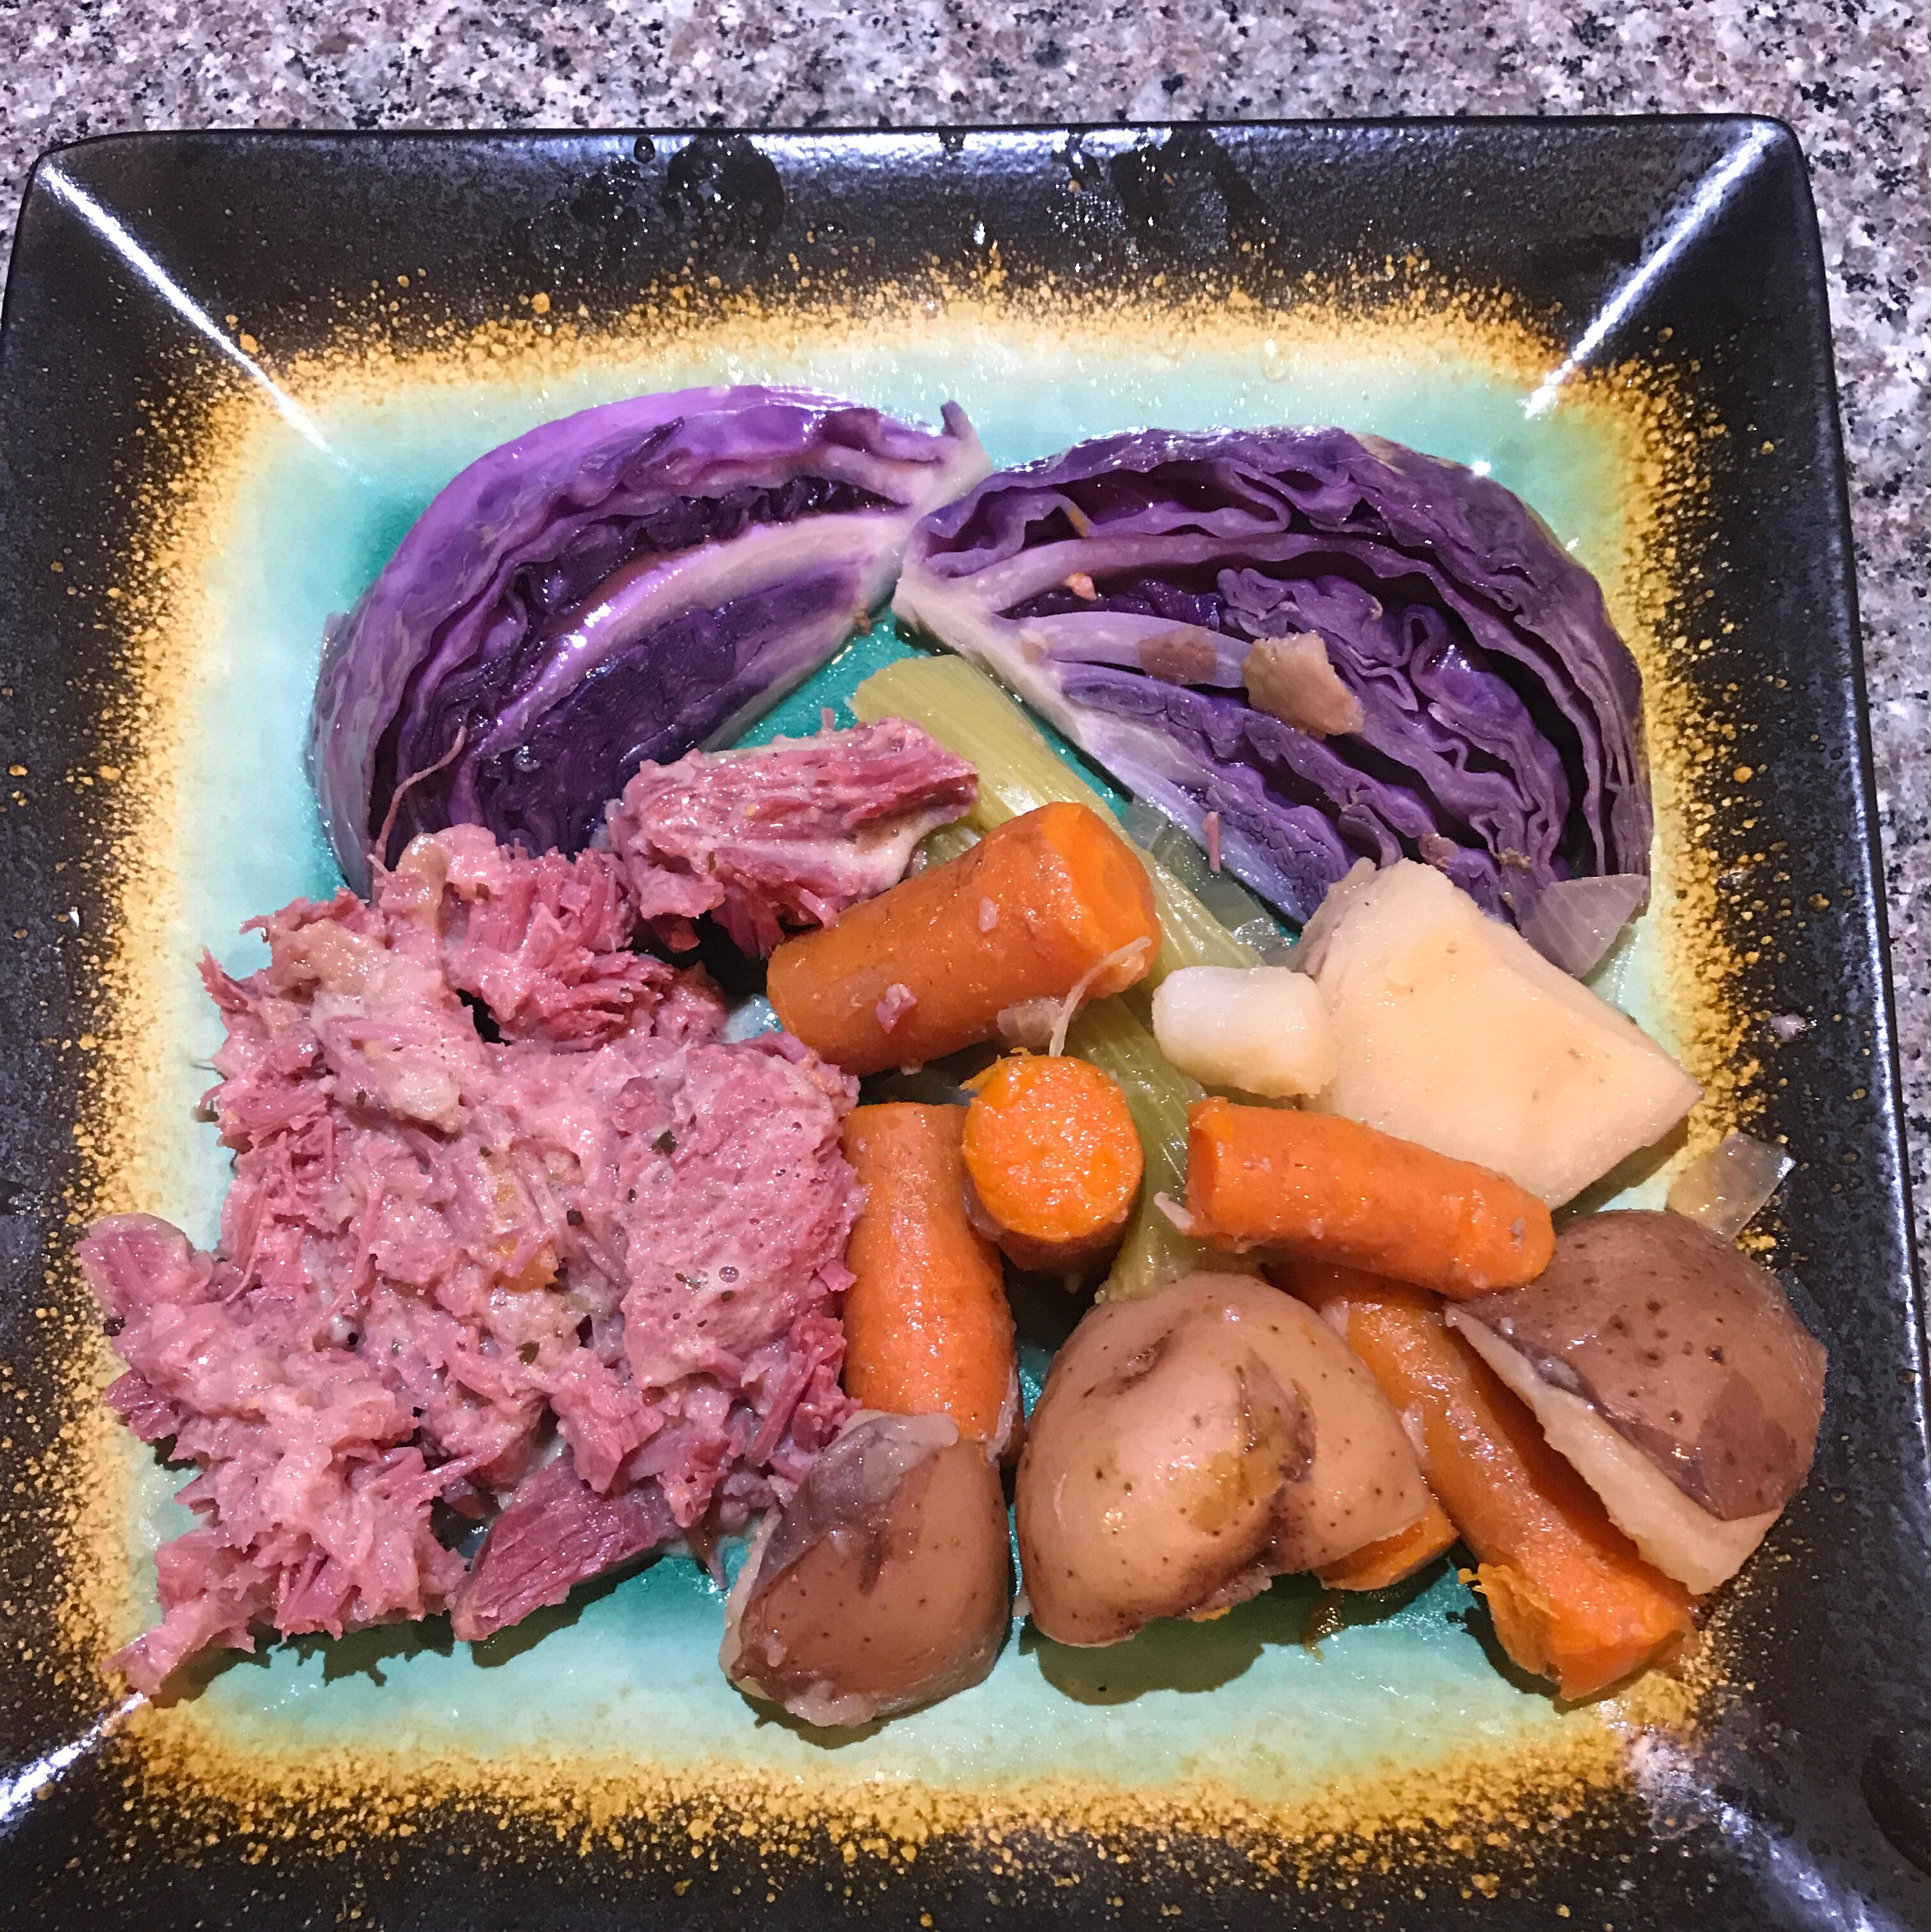 sarahs slow cooker corned beef and cabbage recipe